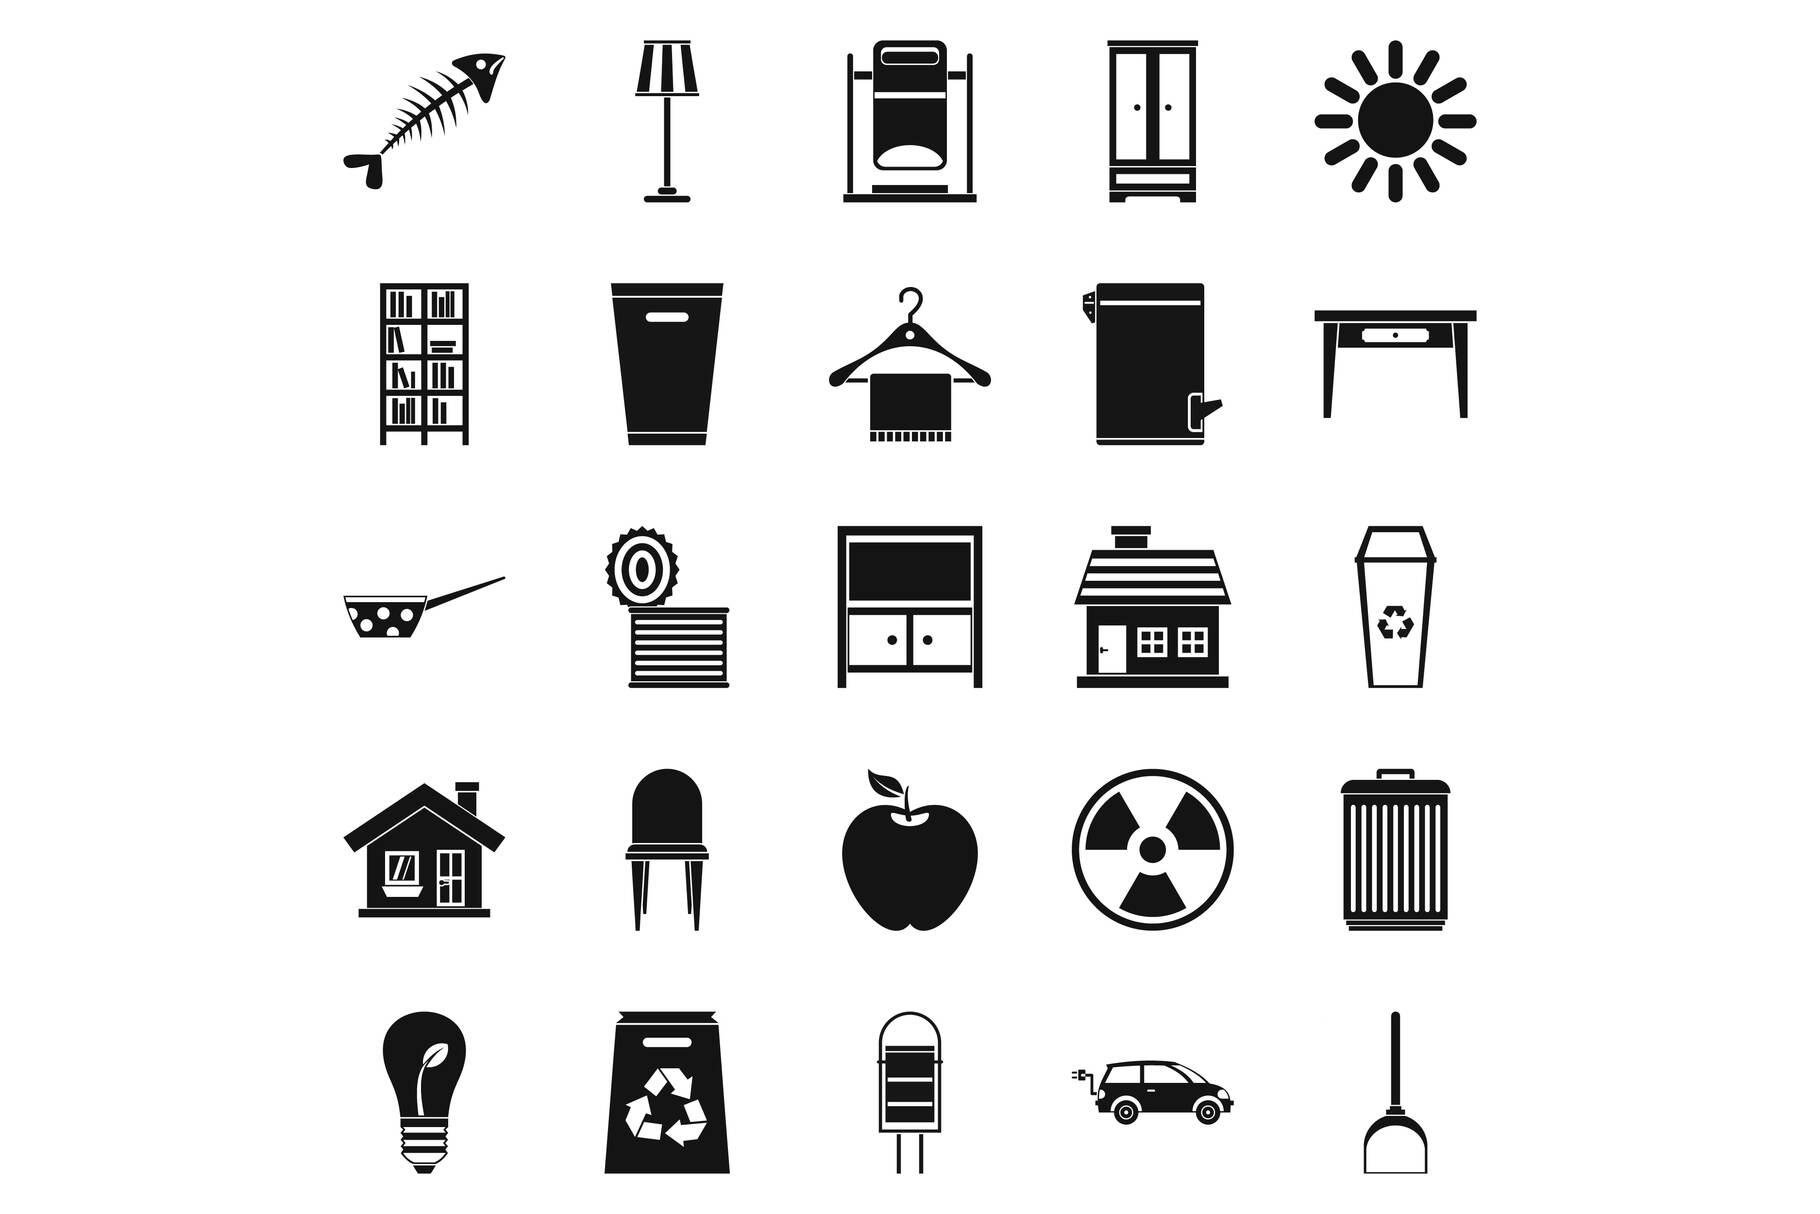 Cleaning icons set, simple style example image 1